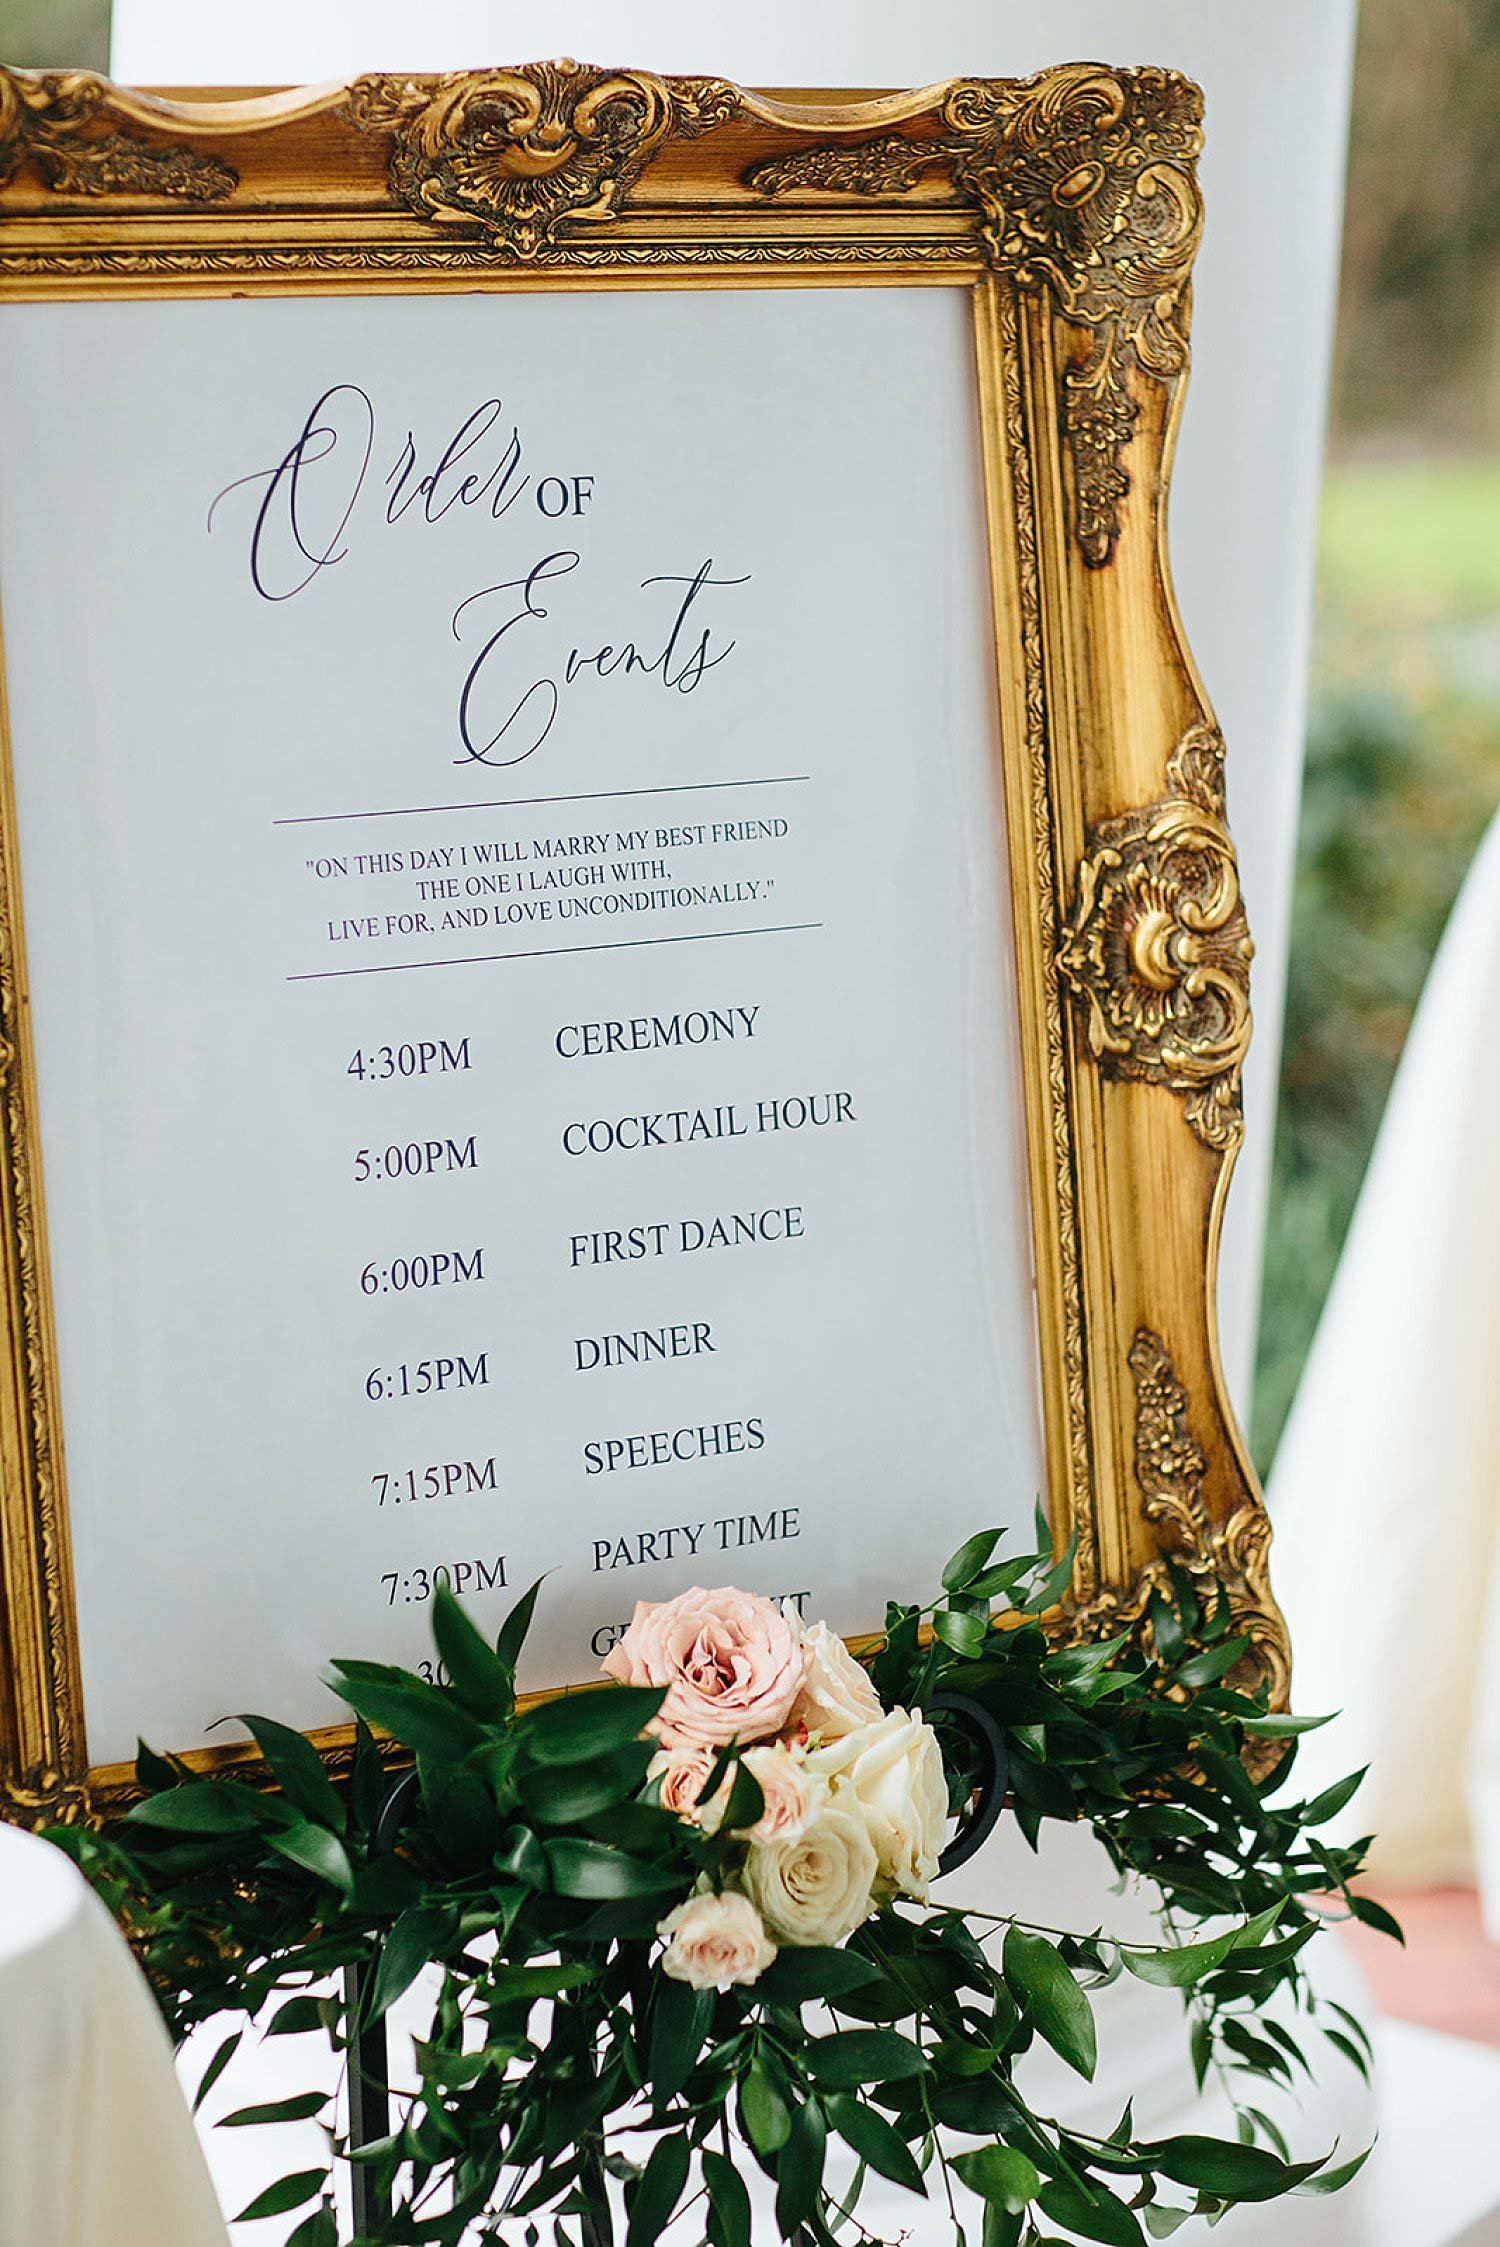 Wedding timeline sign with a gold frame